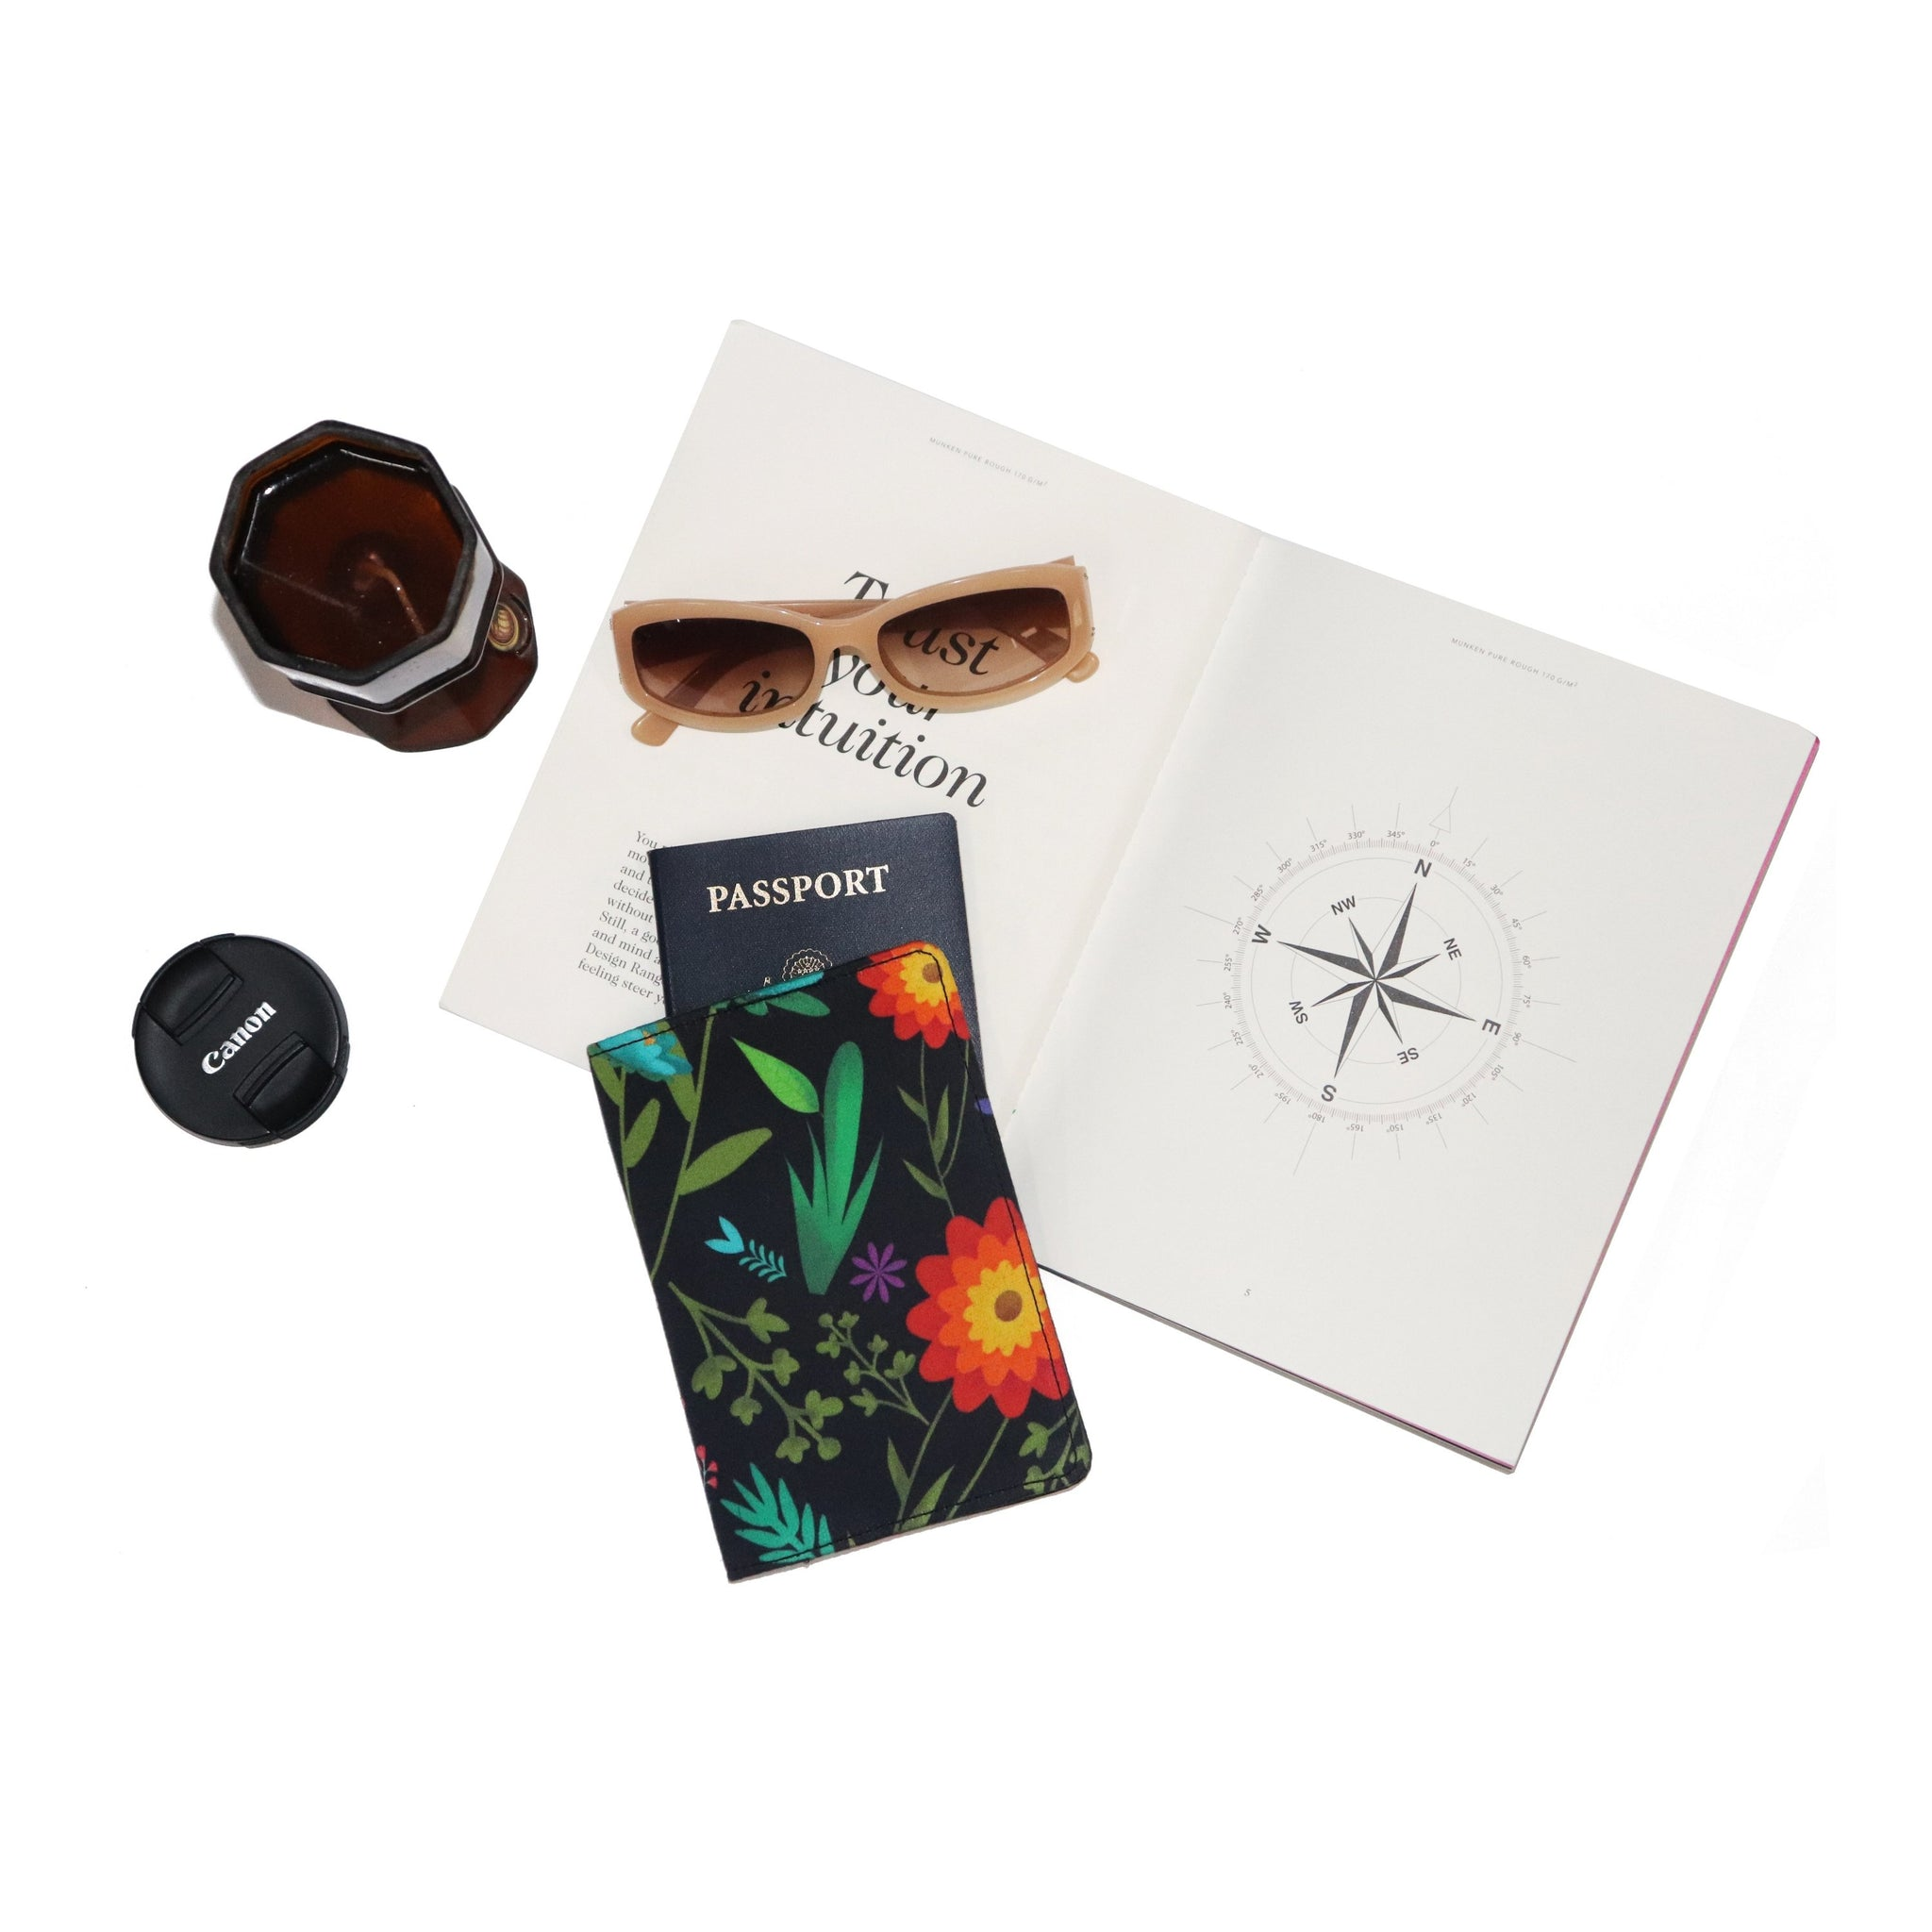 THE SUSTAINABLE TRAVELLER GIFT PACK